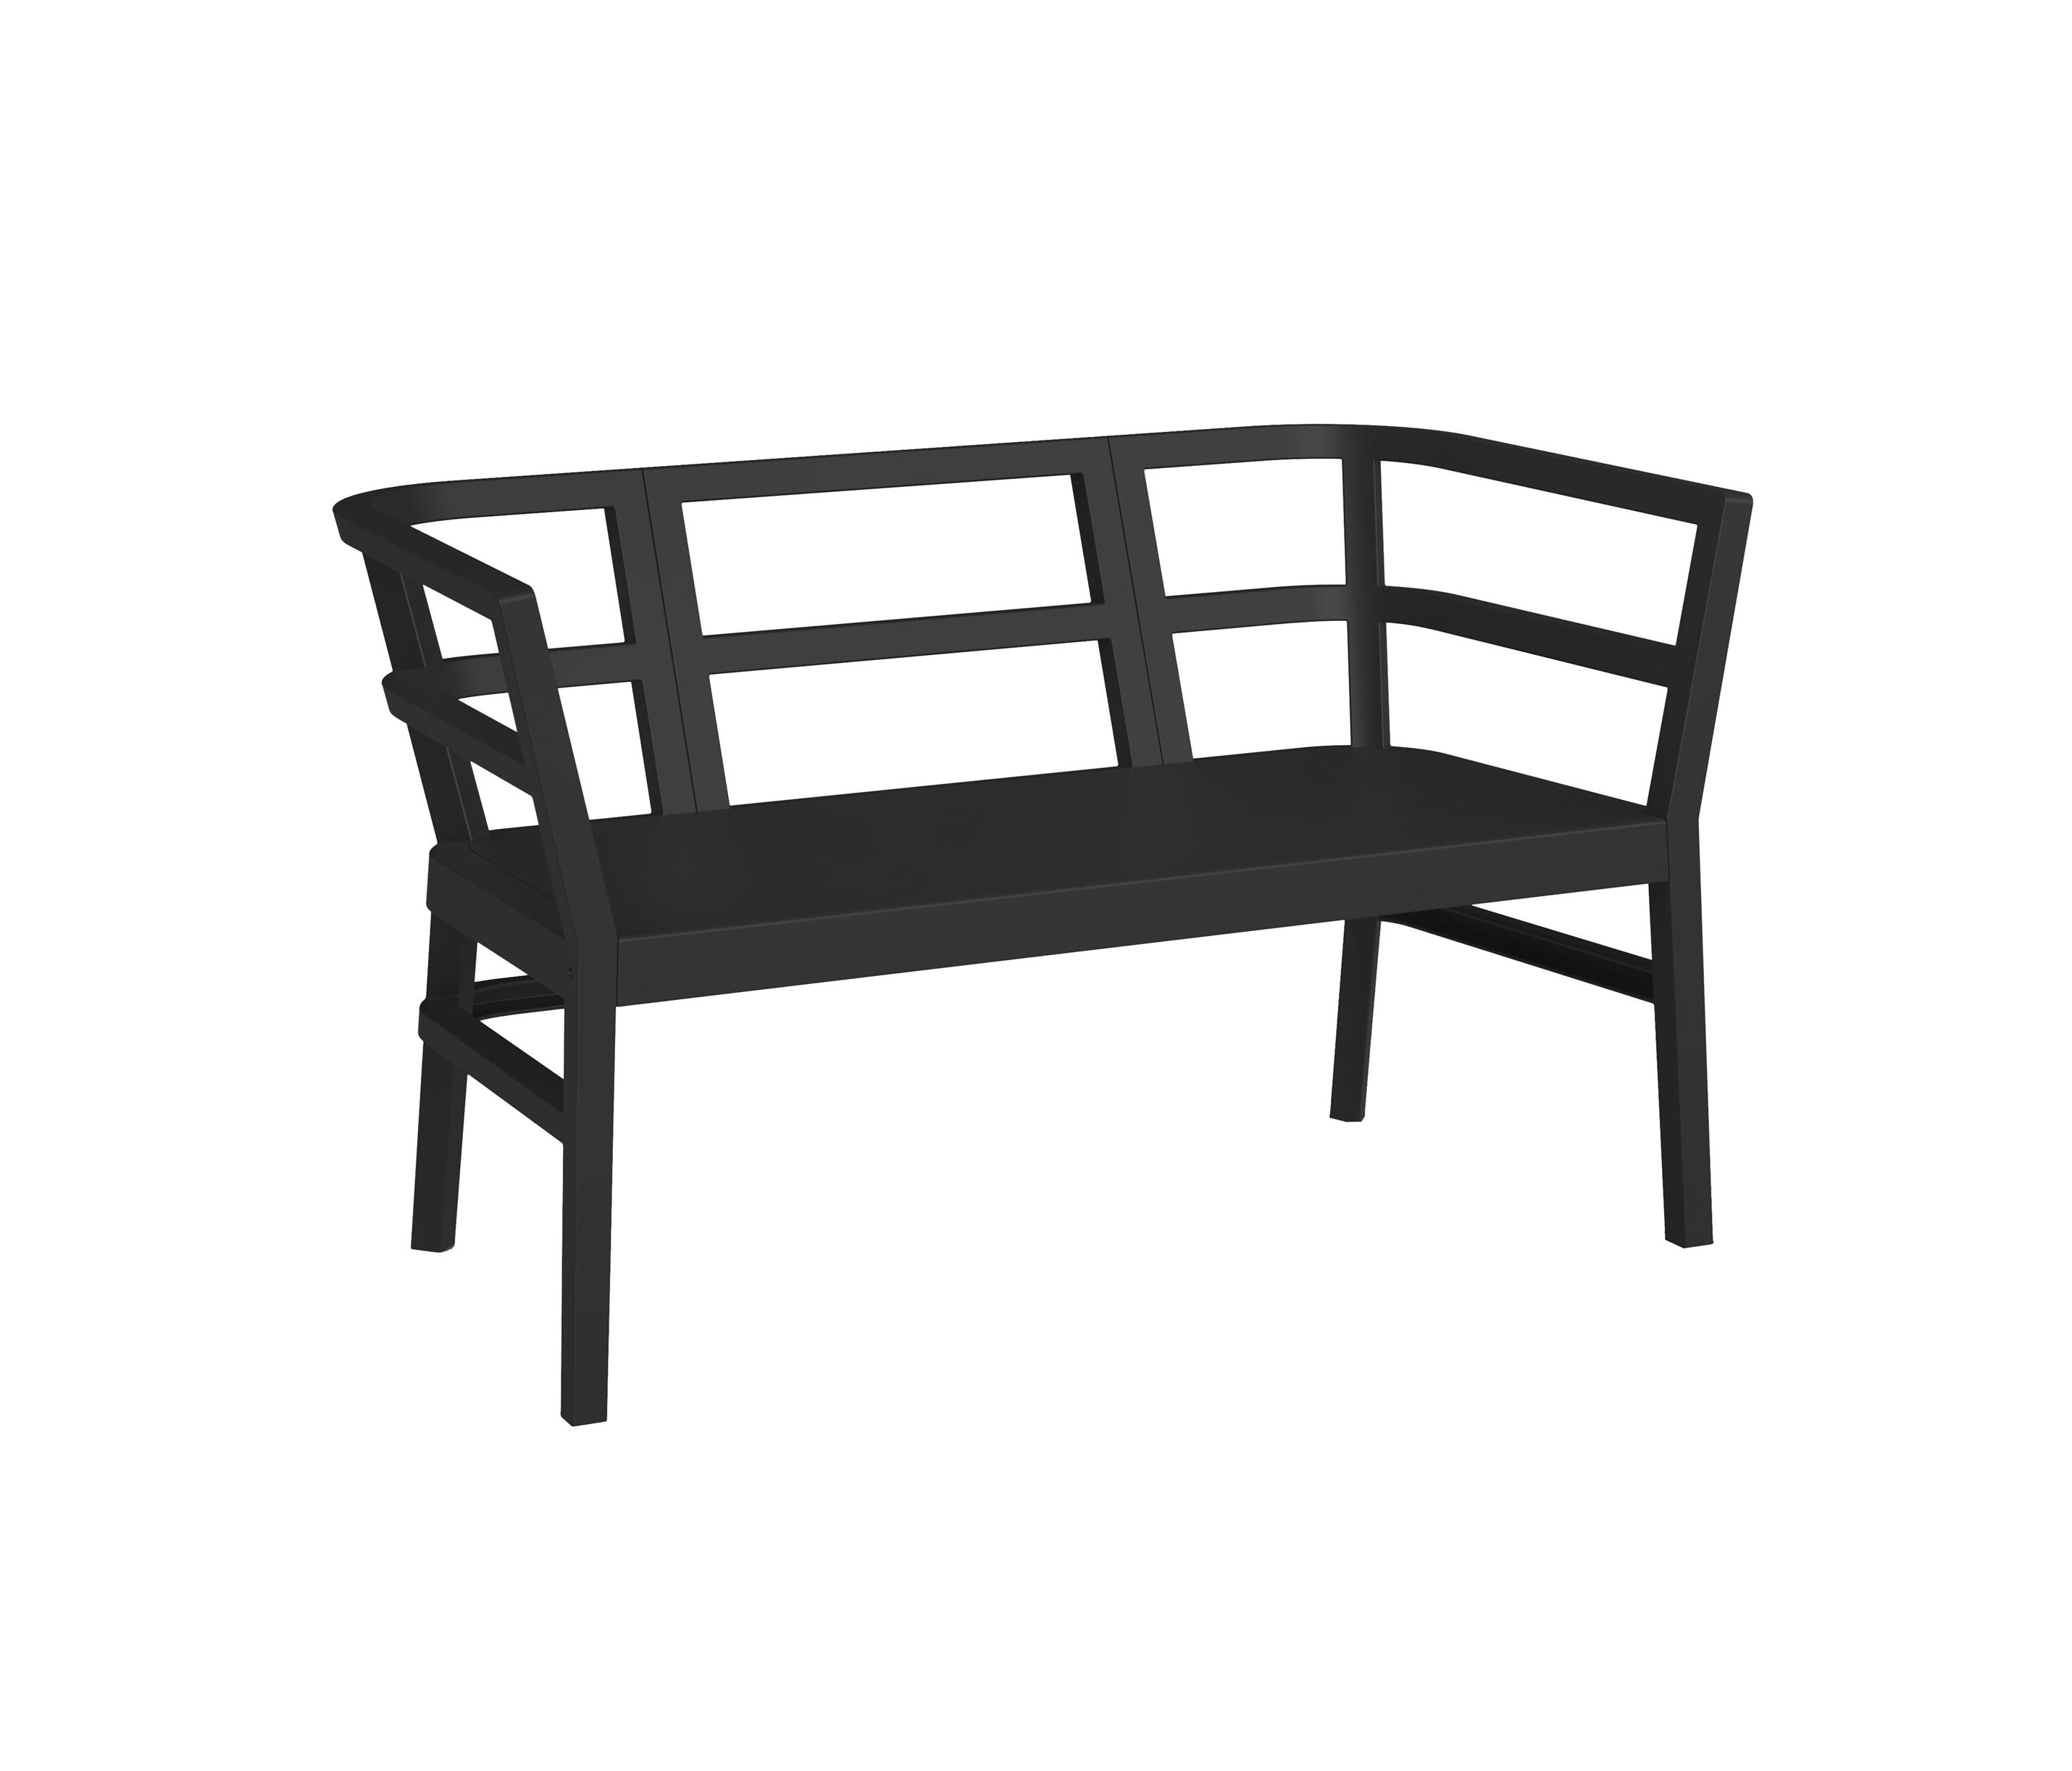 Swell Click Clack Sofa Designer Furniture Architonic Cjindustries Chair Design For Home Cjindustriesco